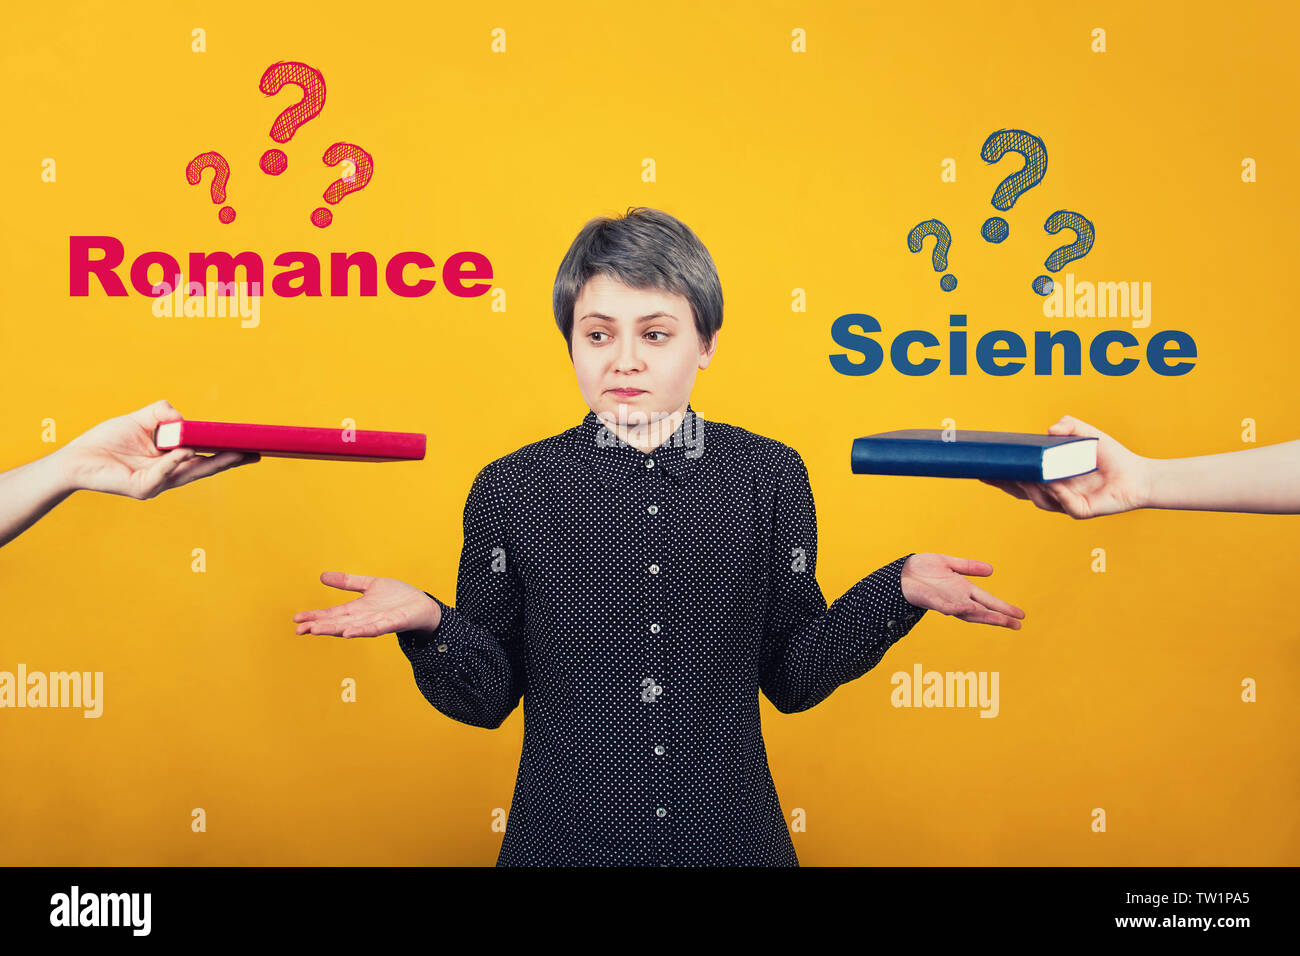 Puzzled young woman student balancing hands thinking what to read between a science book and romance. Choice dilemma, red vs blue. Education and liter - Stock Image